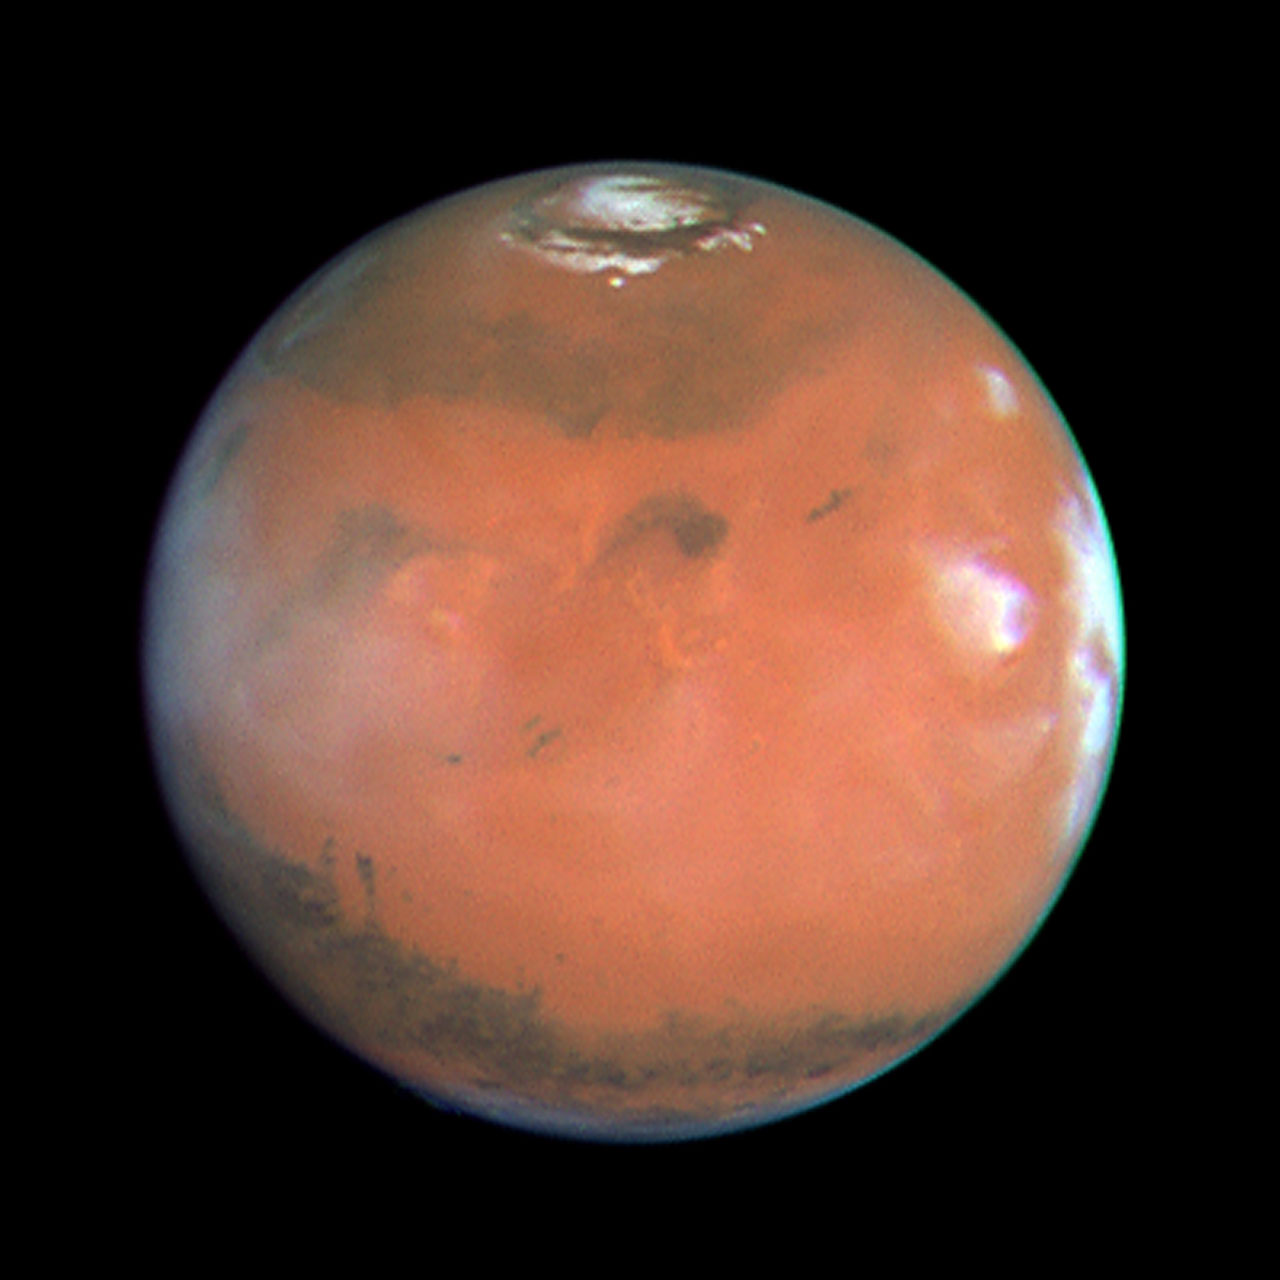 hubble images of mars - photo #18